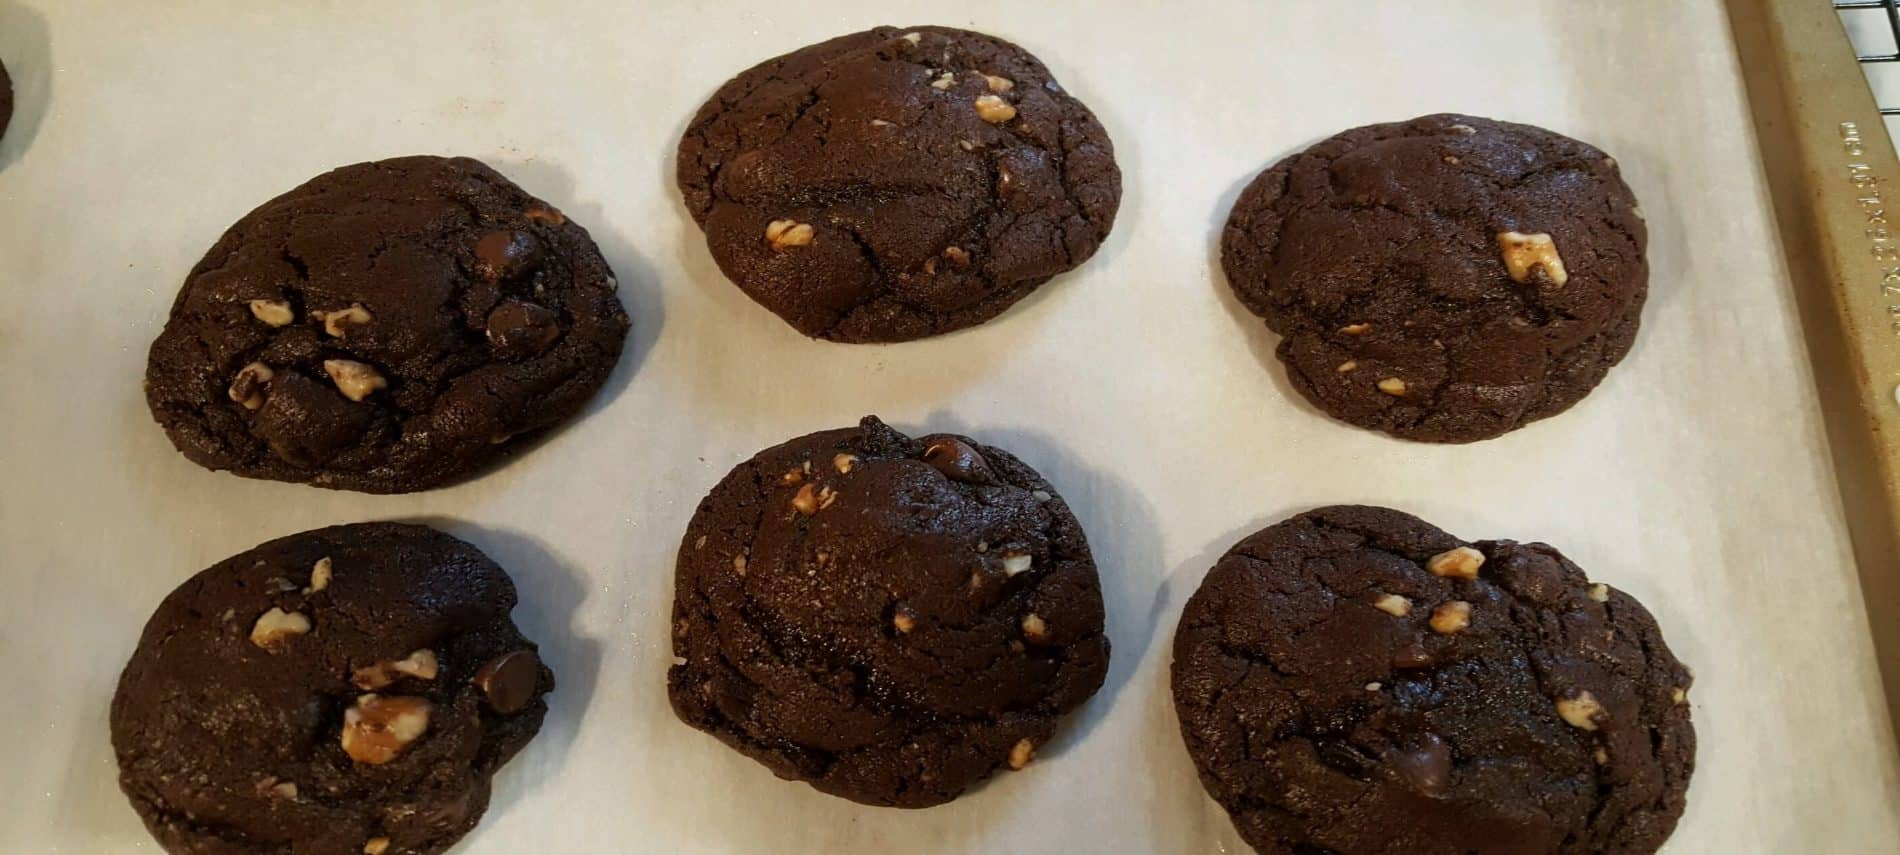 six chocolate chunky cookies on white parchment paper on cookie sheet